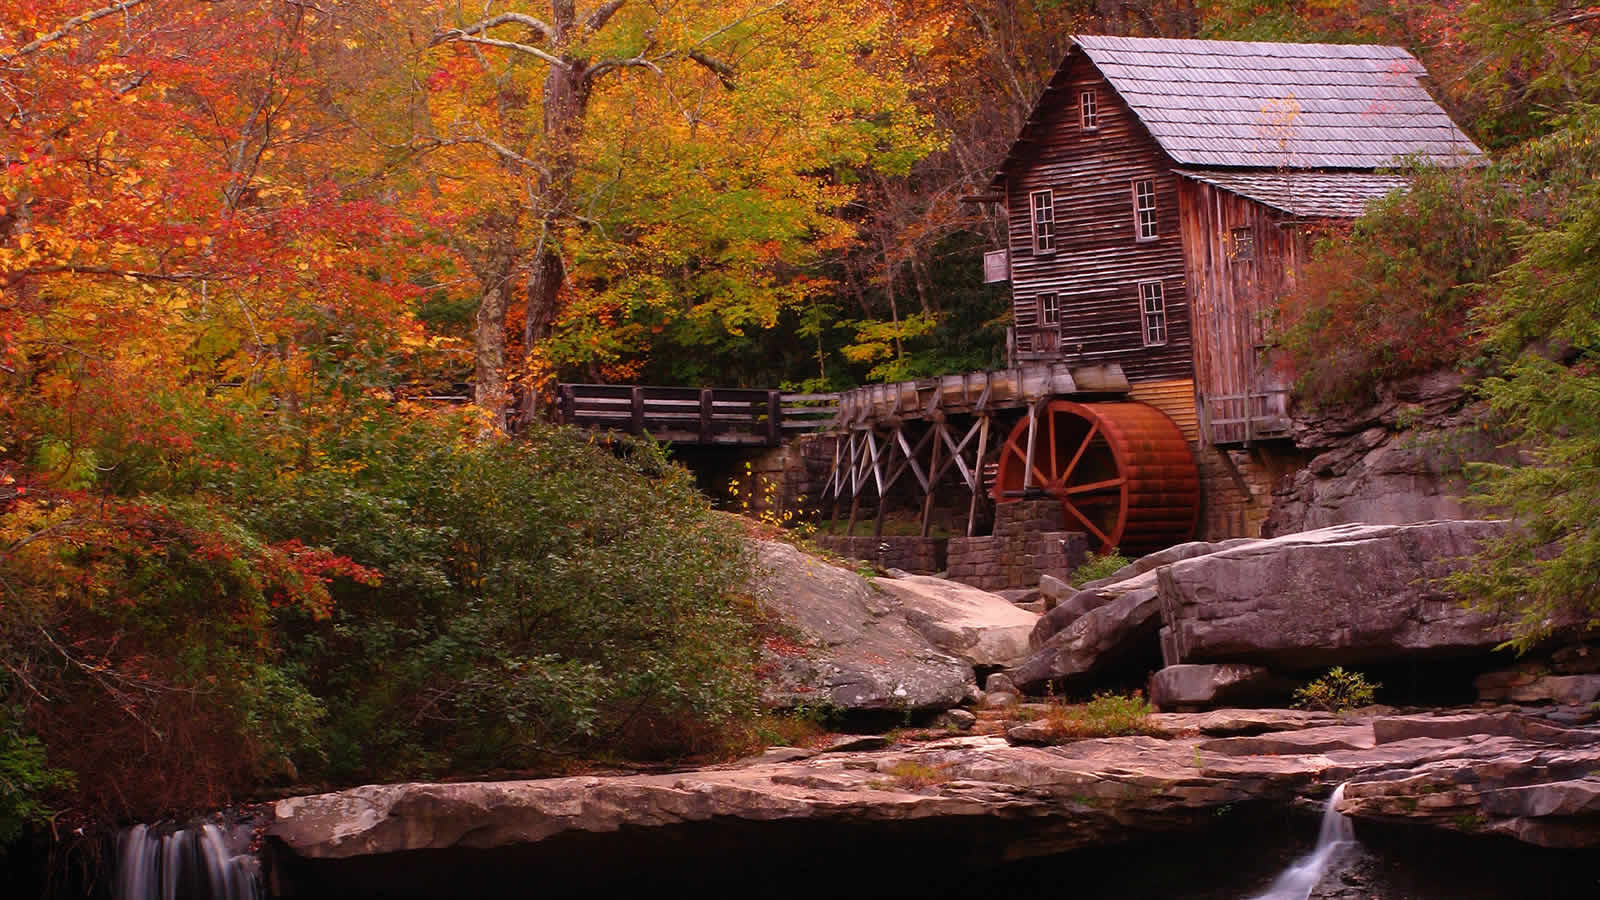 ... Wallpapers_Beautiful_Autumn_Landscapes_Colorful_Fall_Computer